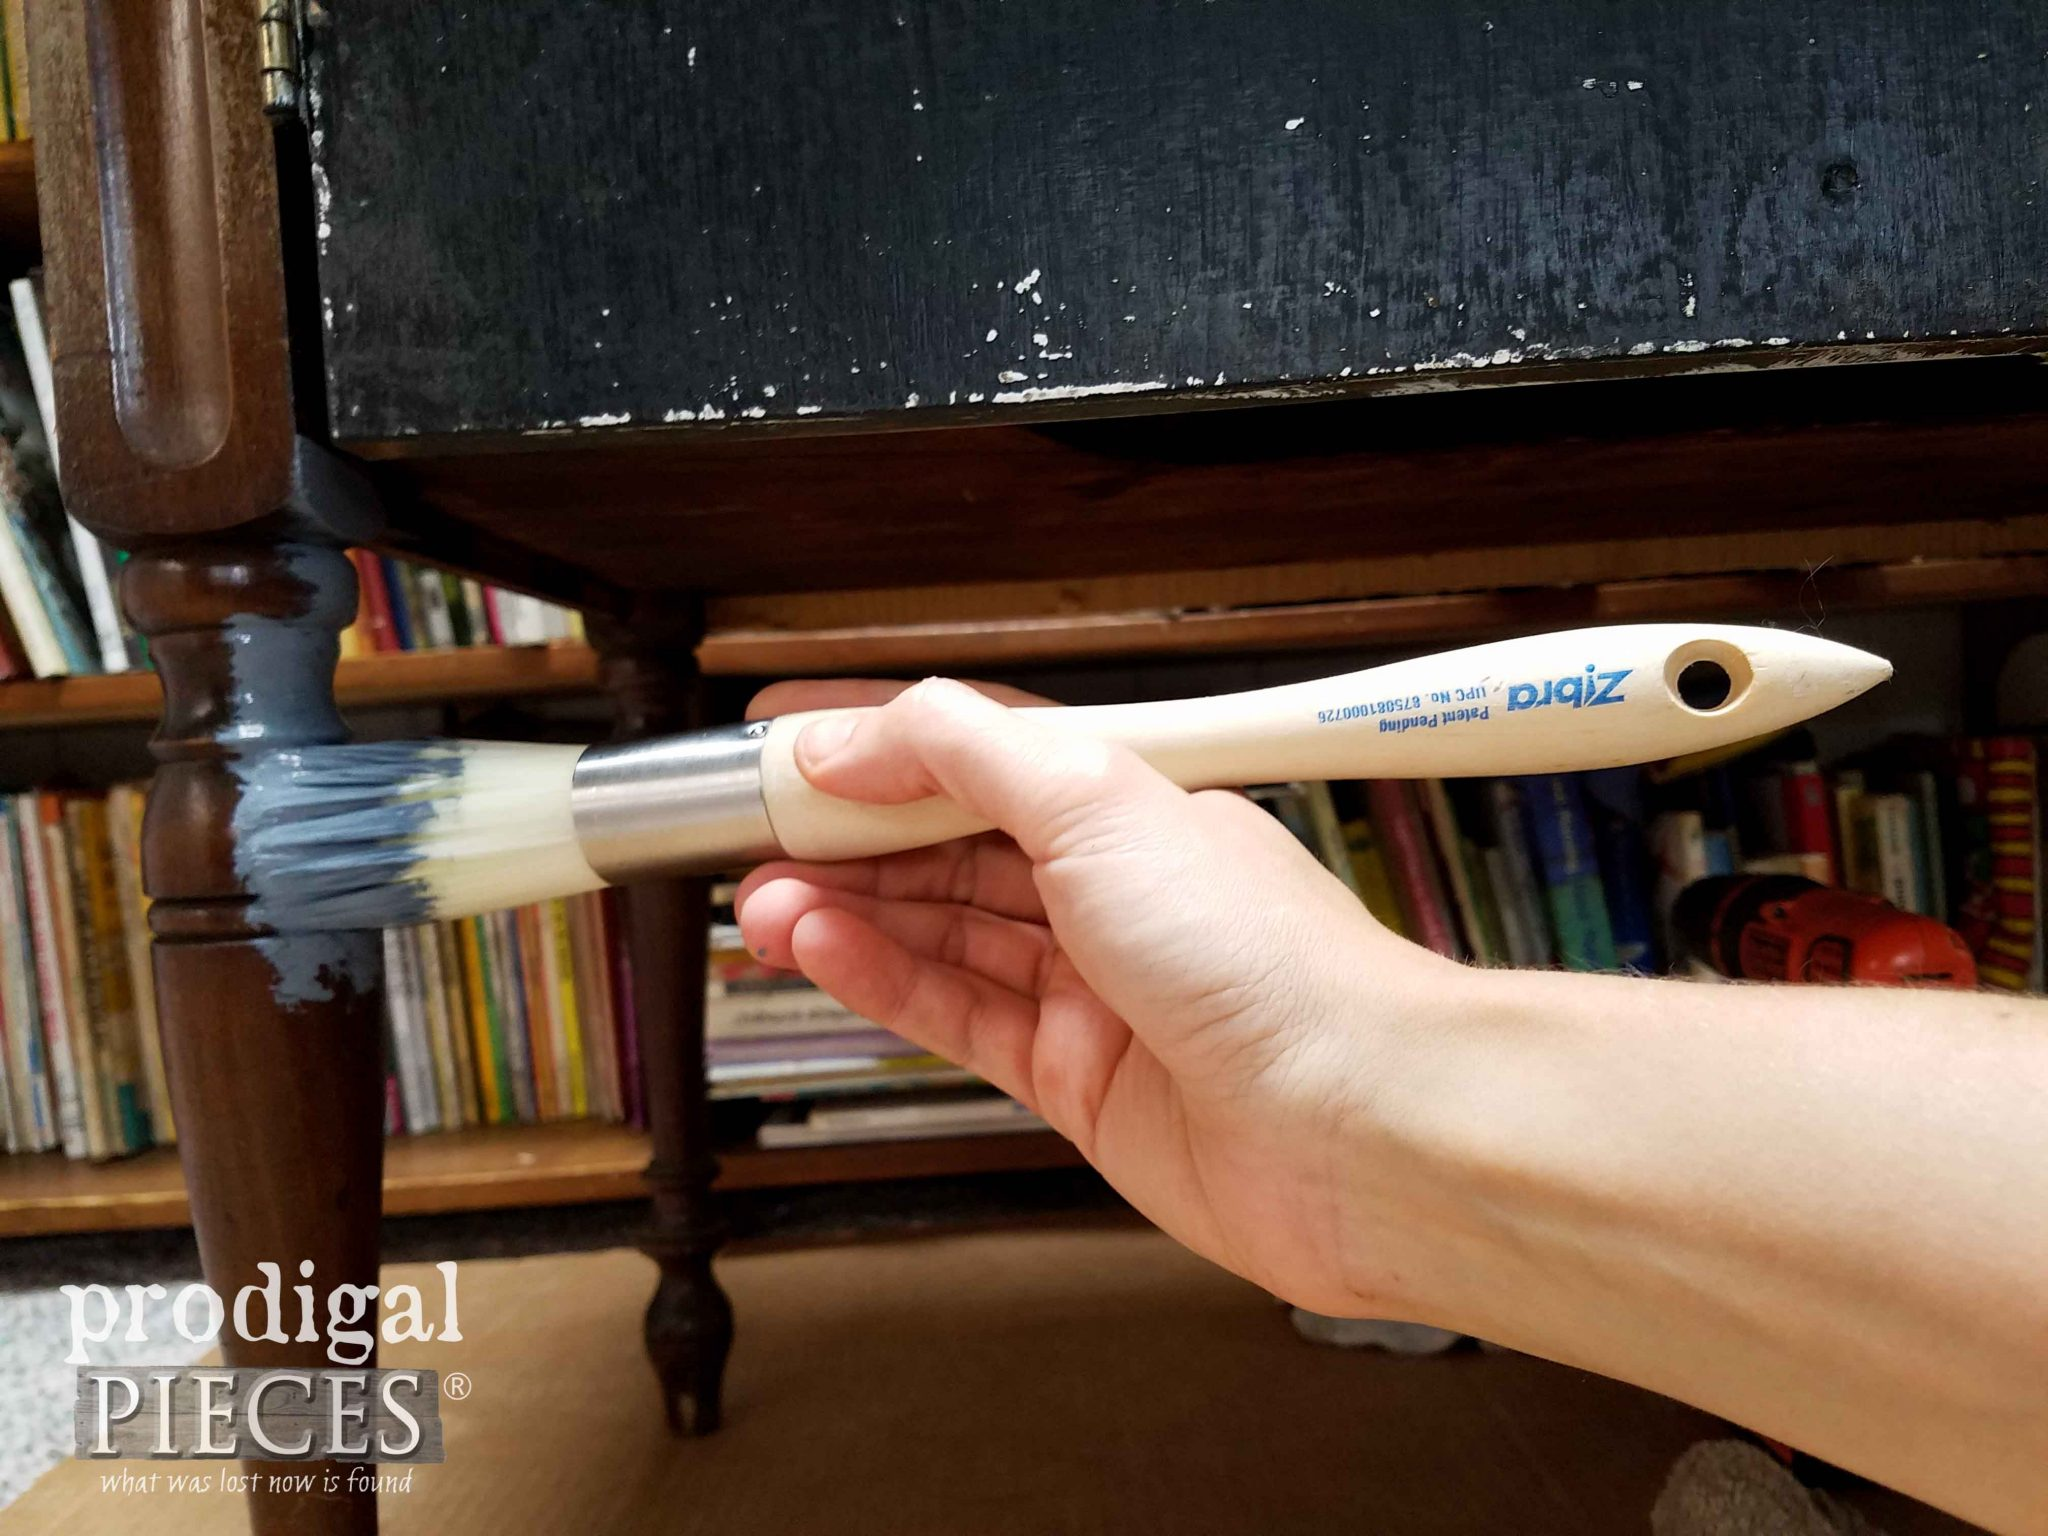 Round Zibra Brush for Furniture Legs and Turnings by Prodigal Pieces | prodigalpieces.com